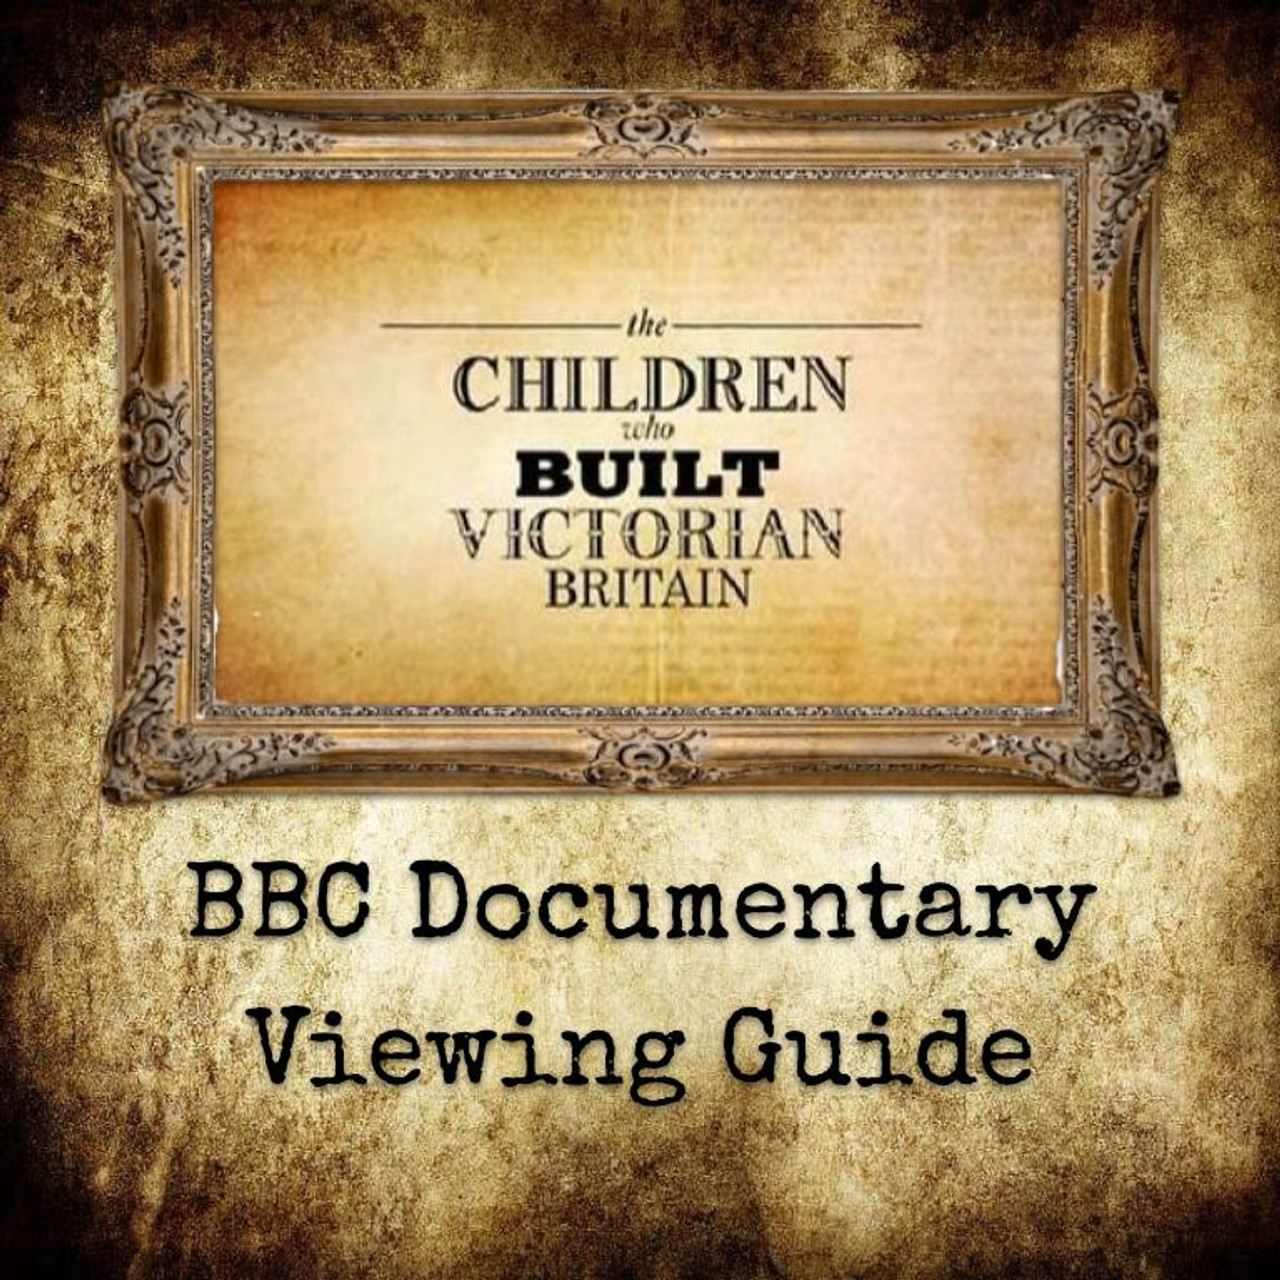 The Children Who Built Victorian Britain Viewing Guide